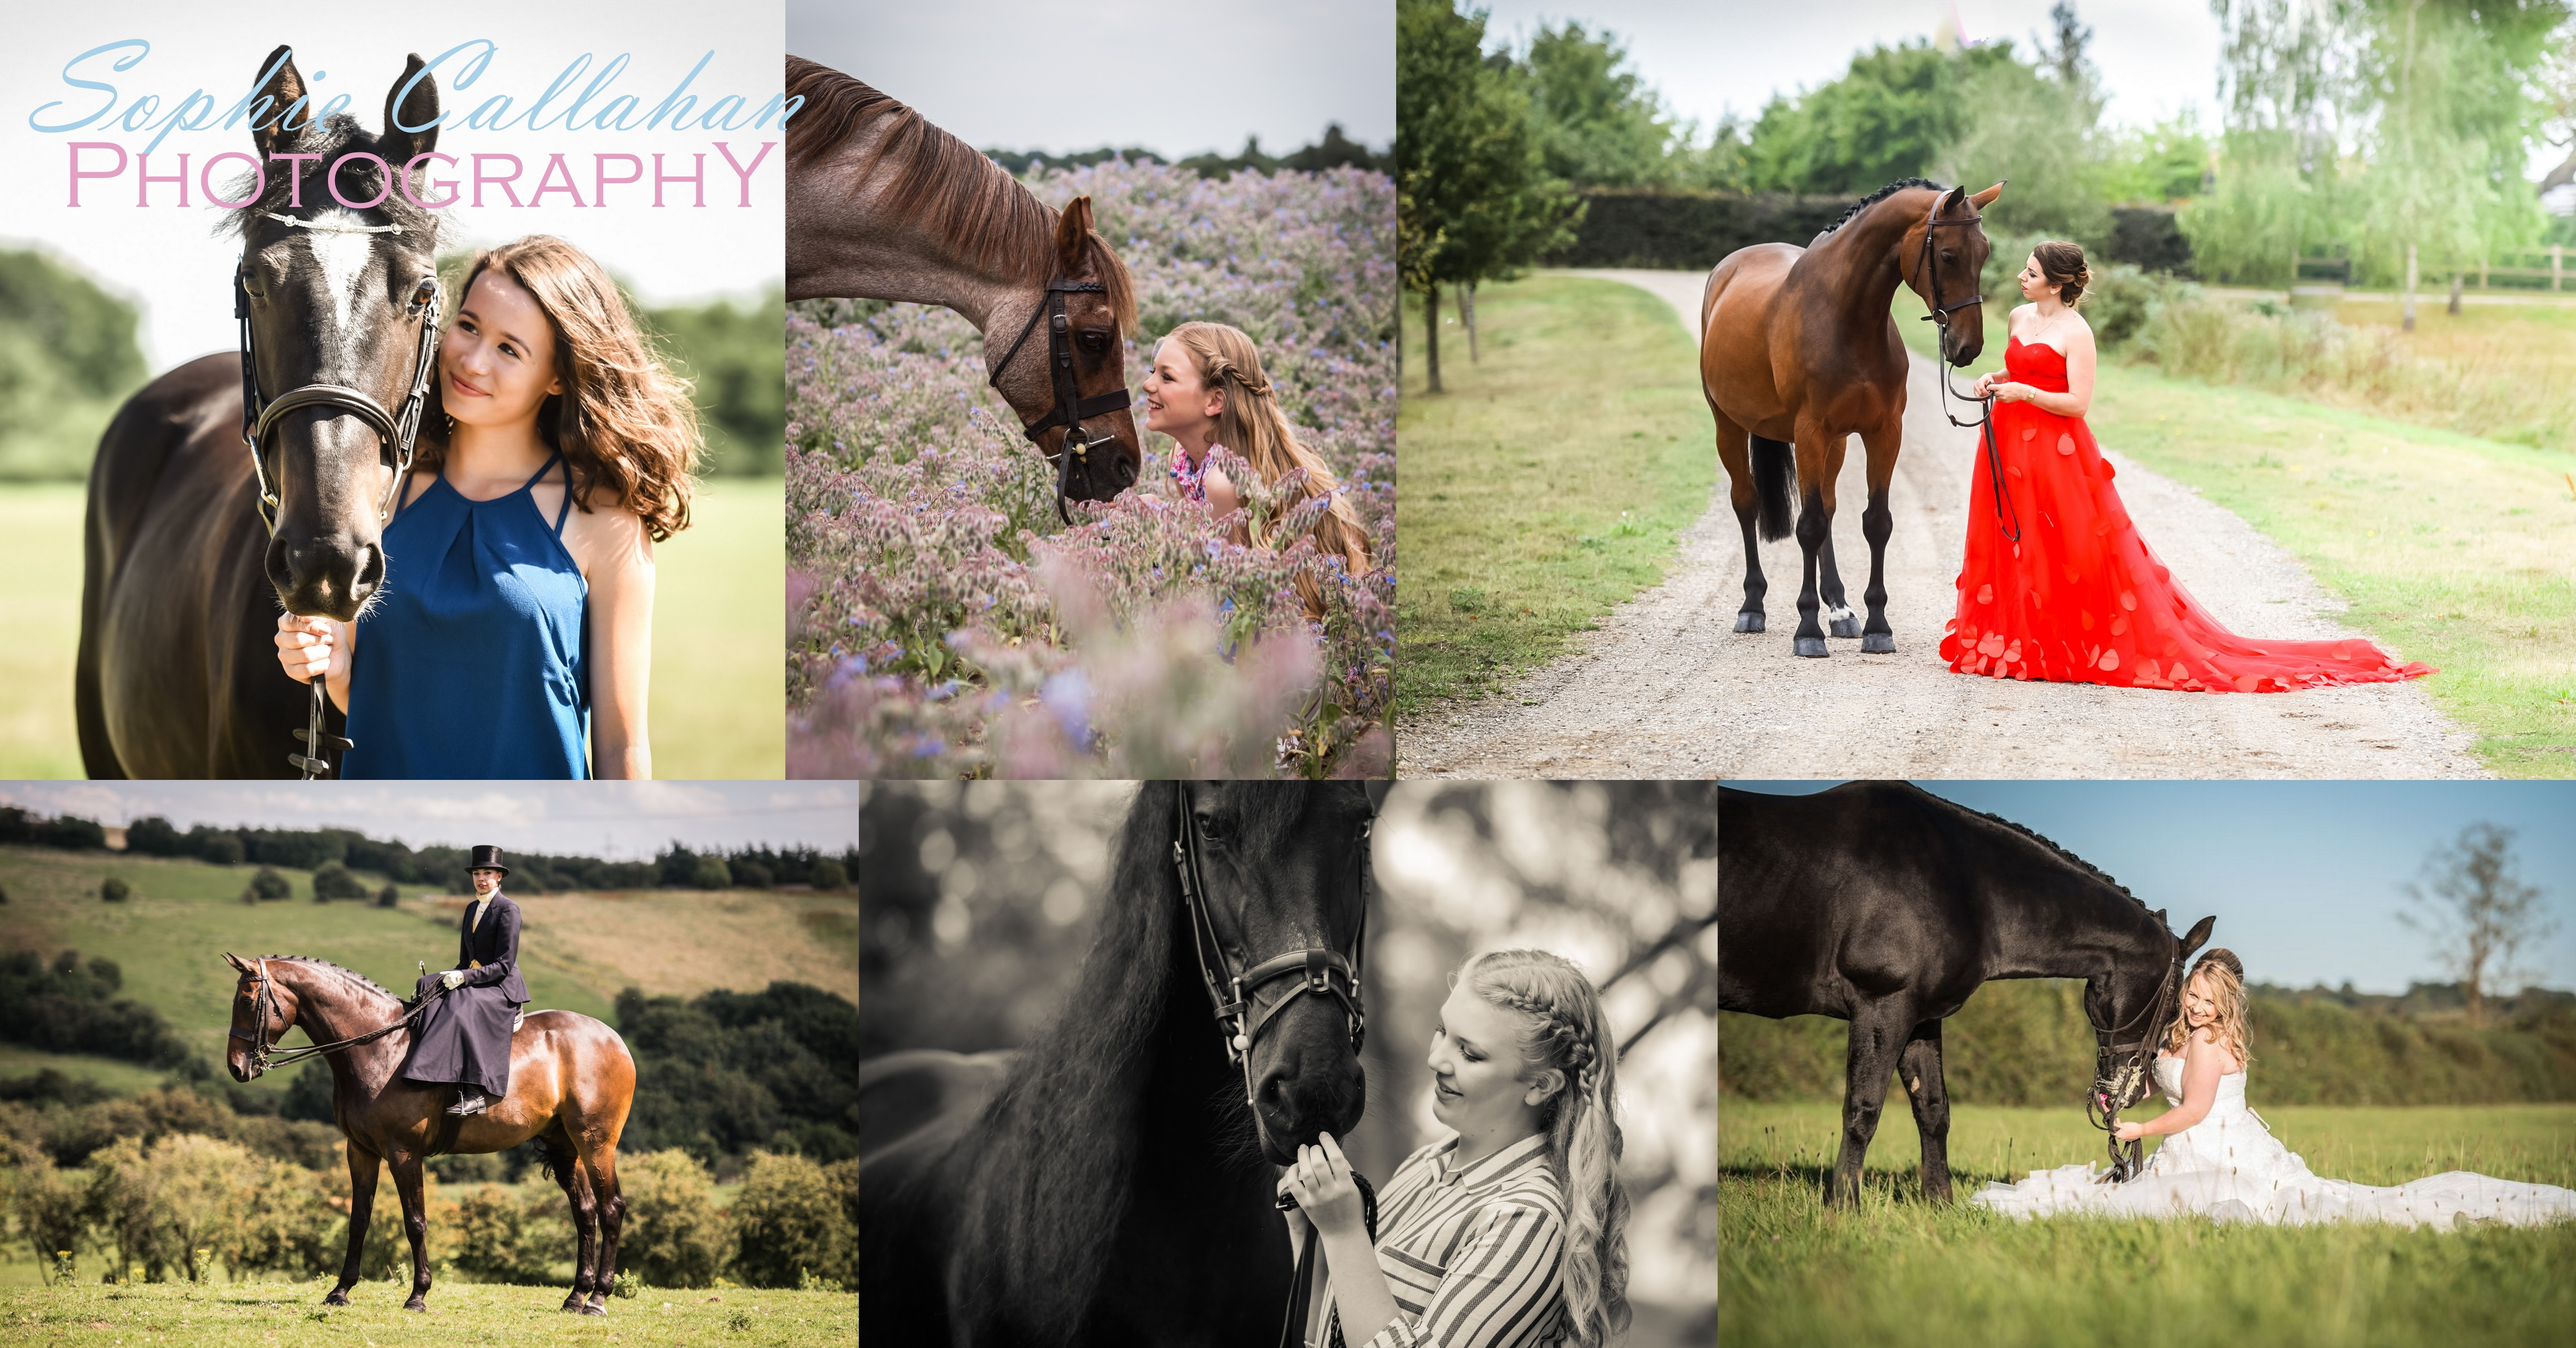 2017 Equine Photoshoot Waiting List, Sophie Callahan Photography